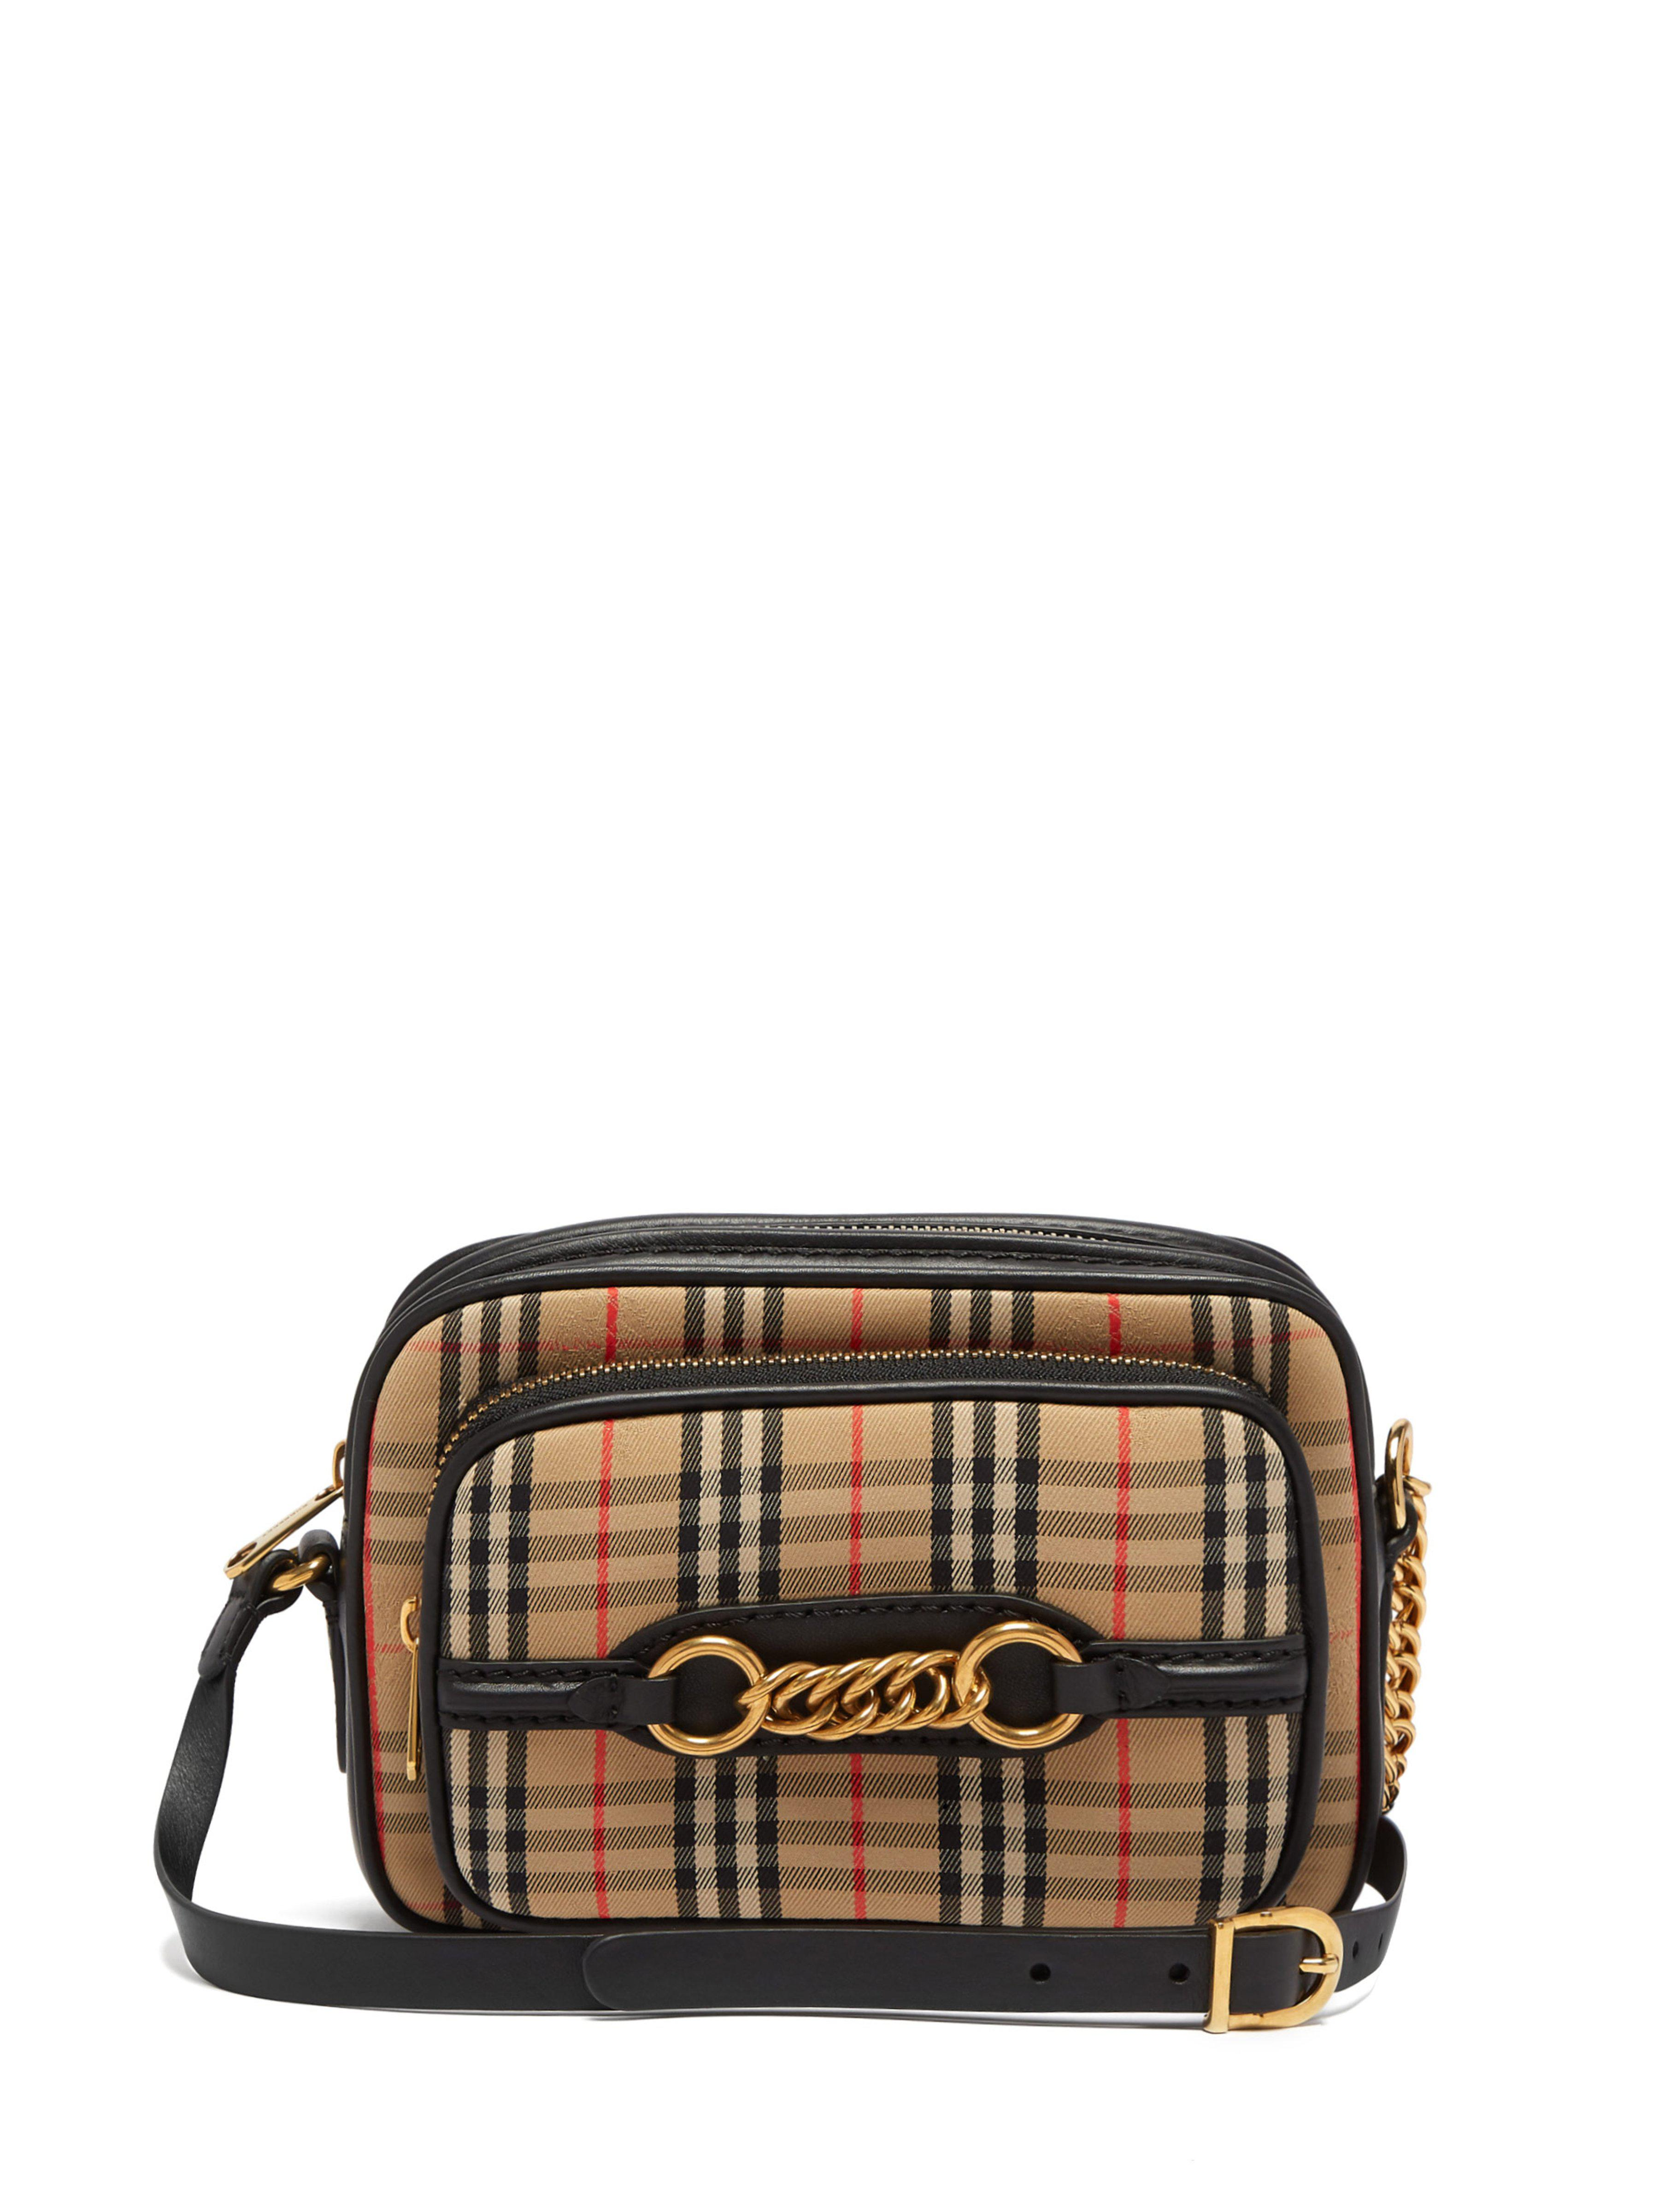 6c14d25f7055 Burberry Check Link Camera Bag in Black - Save 8% - Lyst